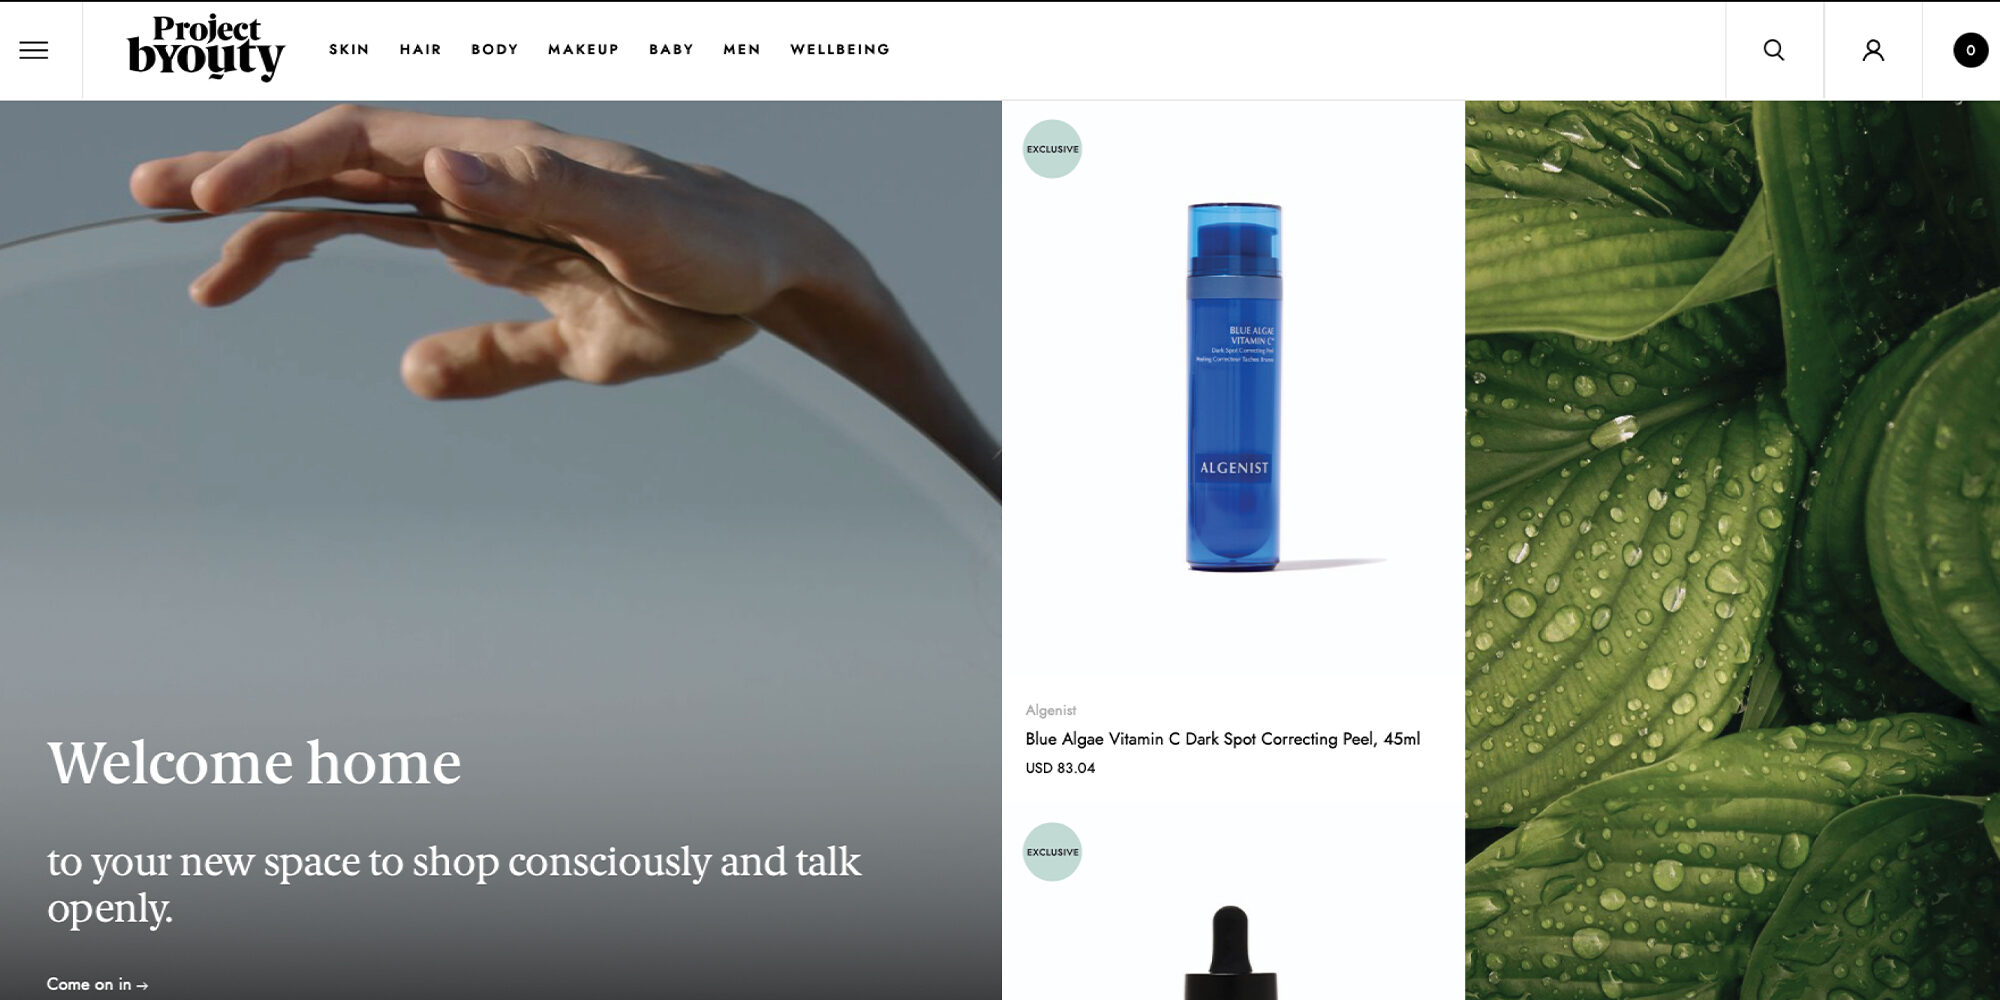 New E-Tailer Project Byouty Presents Conscious Beauty Brands To Middle Eastern Consumers